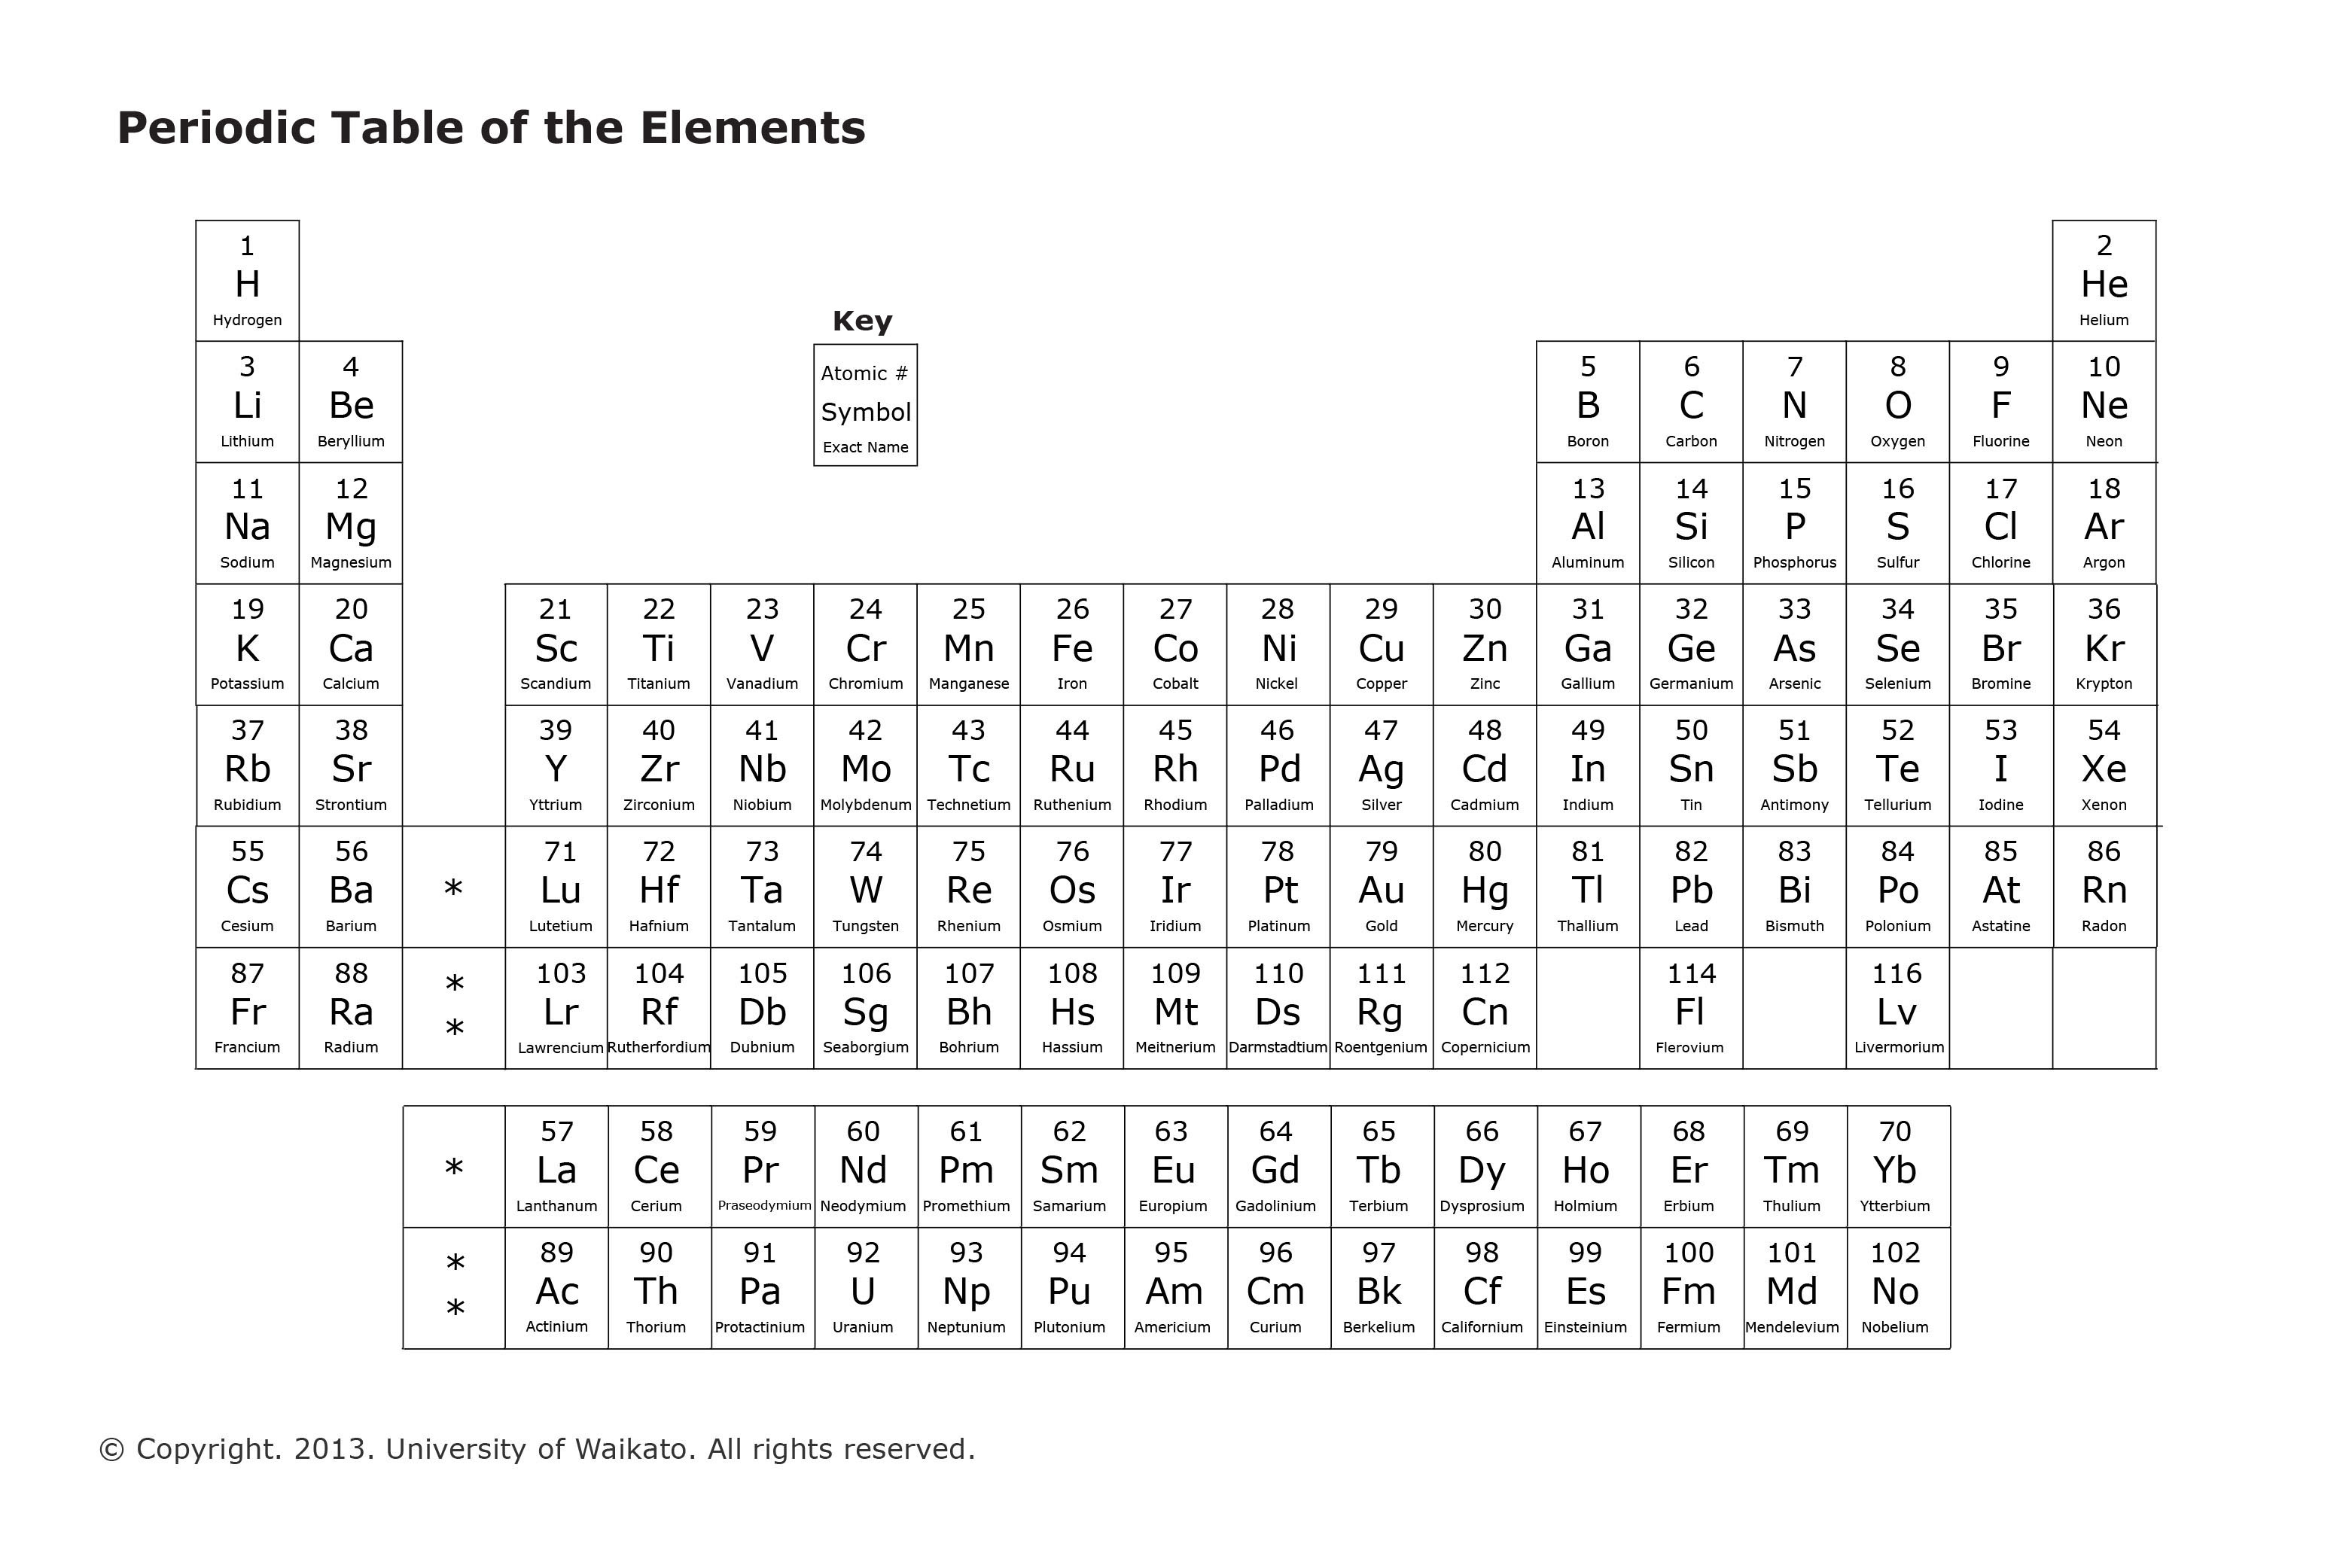 periodic table of elements downloadjpg - Periodic Table Download